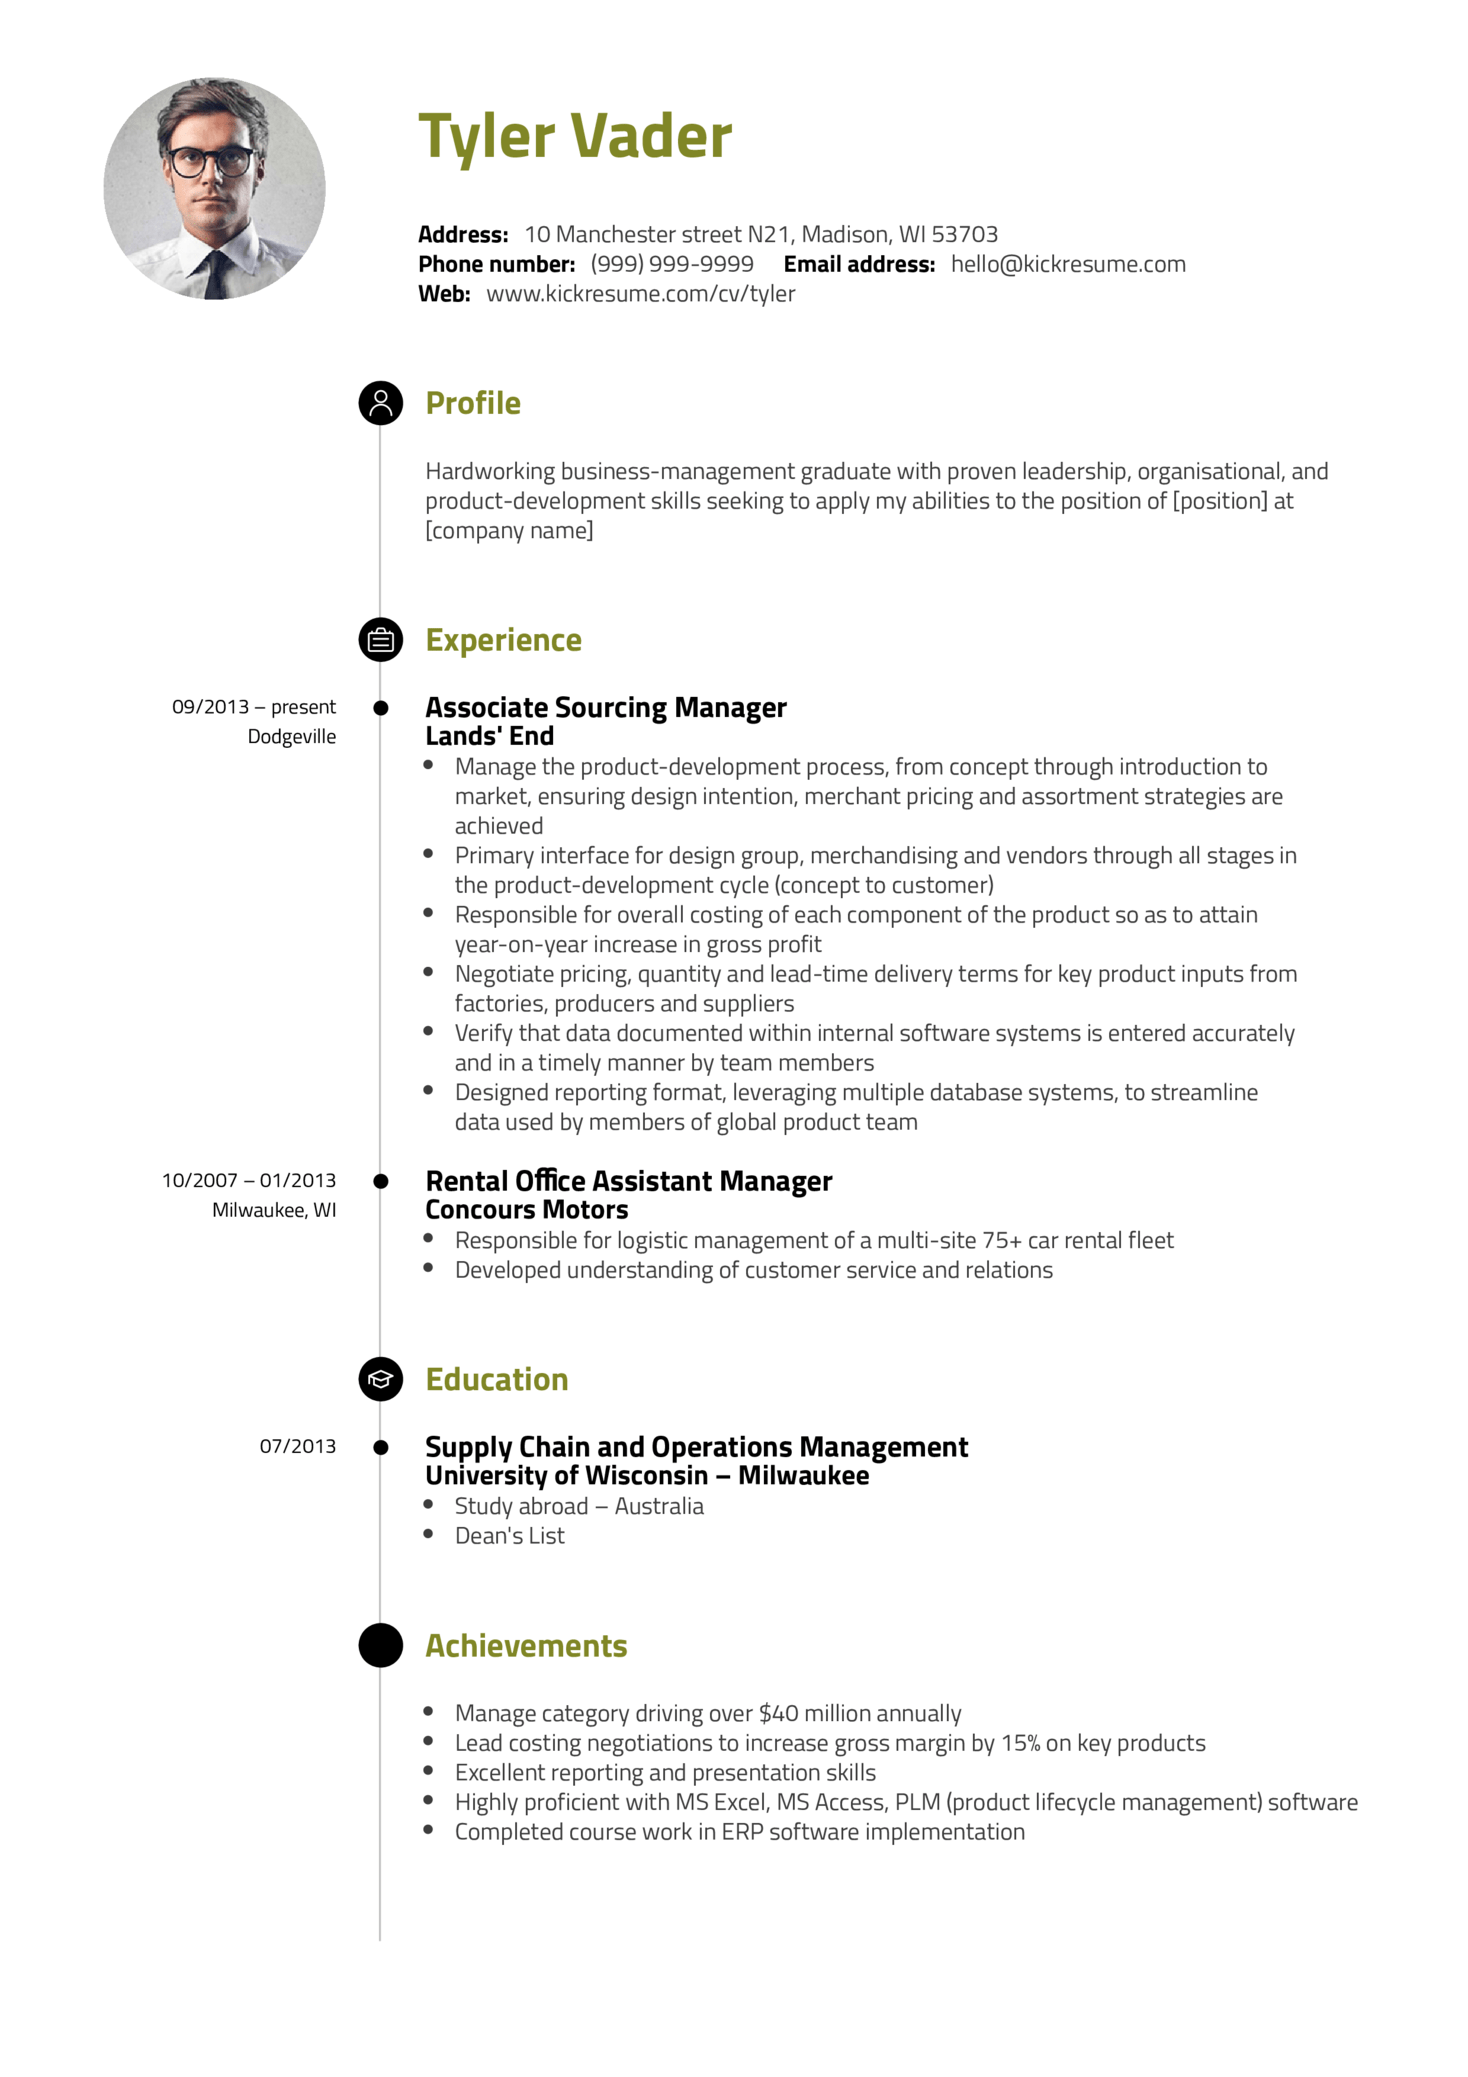 Resume Examples by Real People: Business-management graduate cv ...